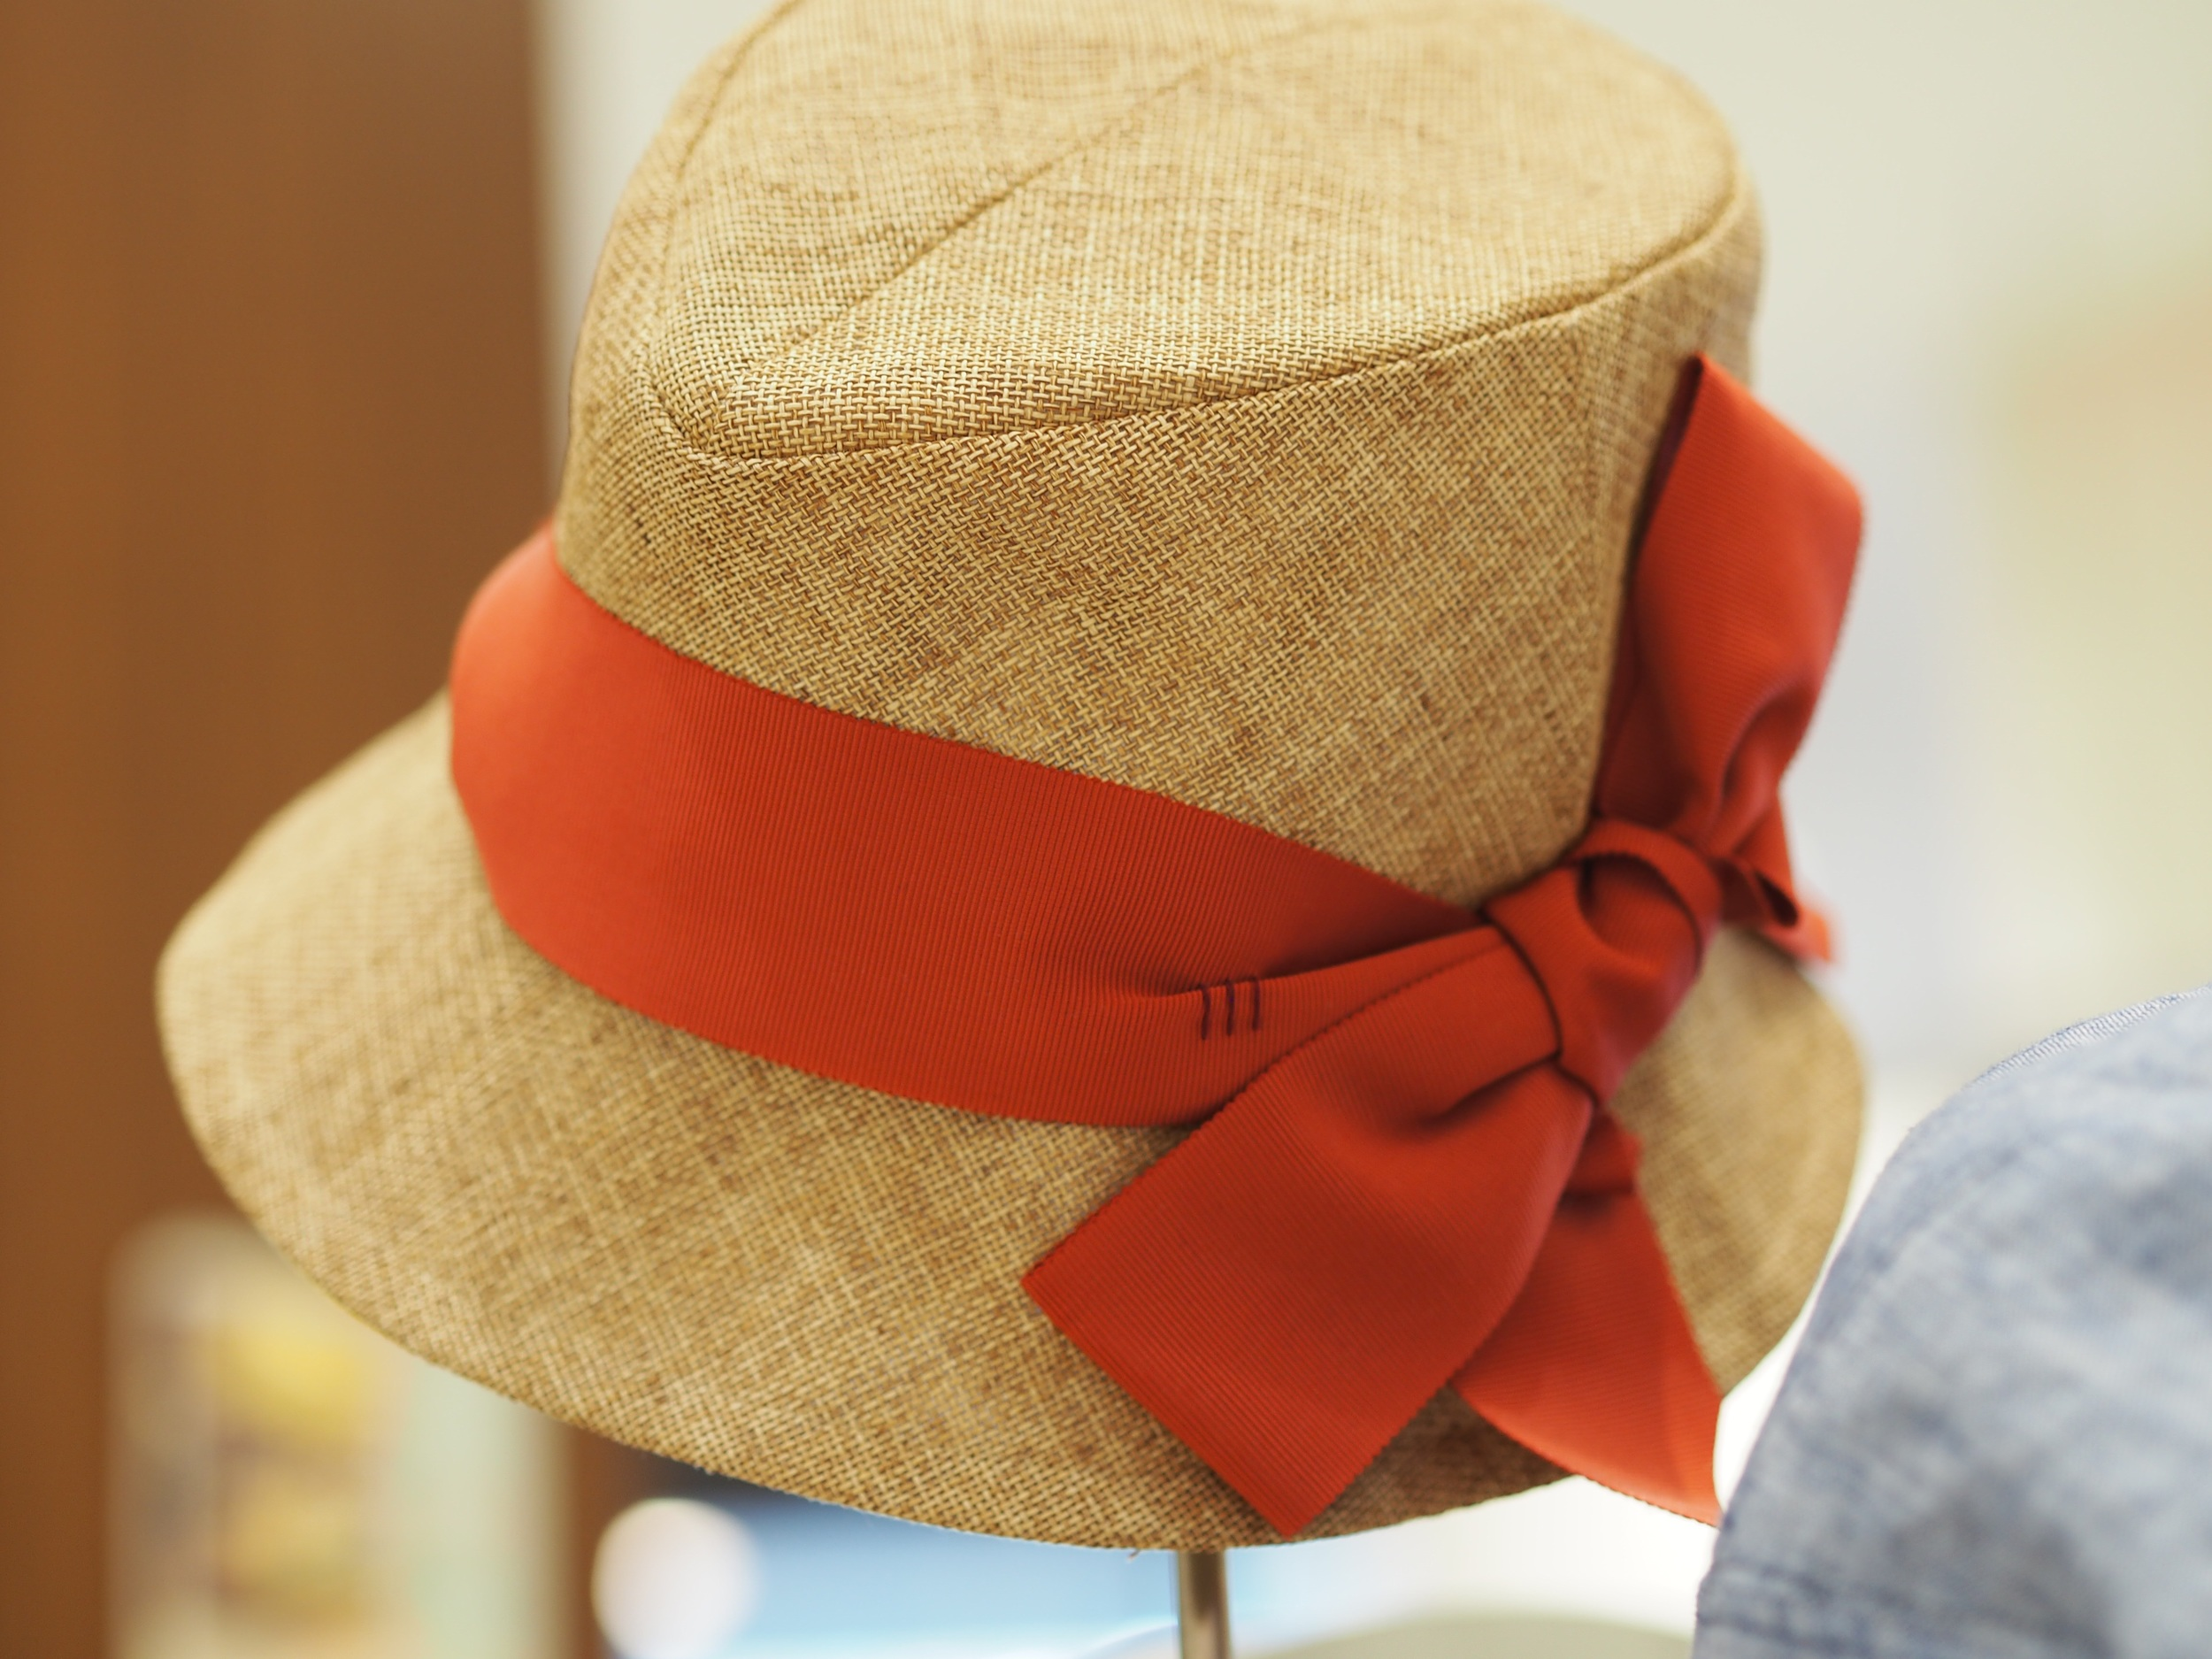 Hat by Levin in a raffia material you can get at Tirb and Reiner